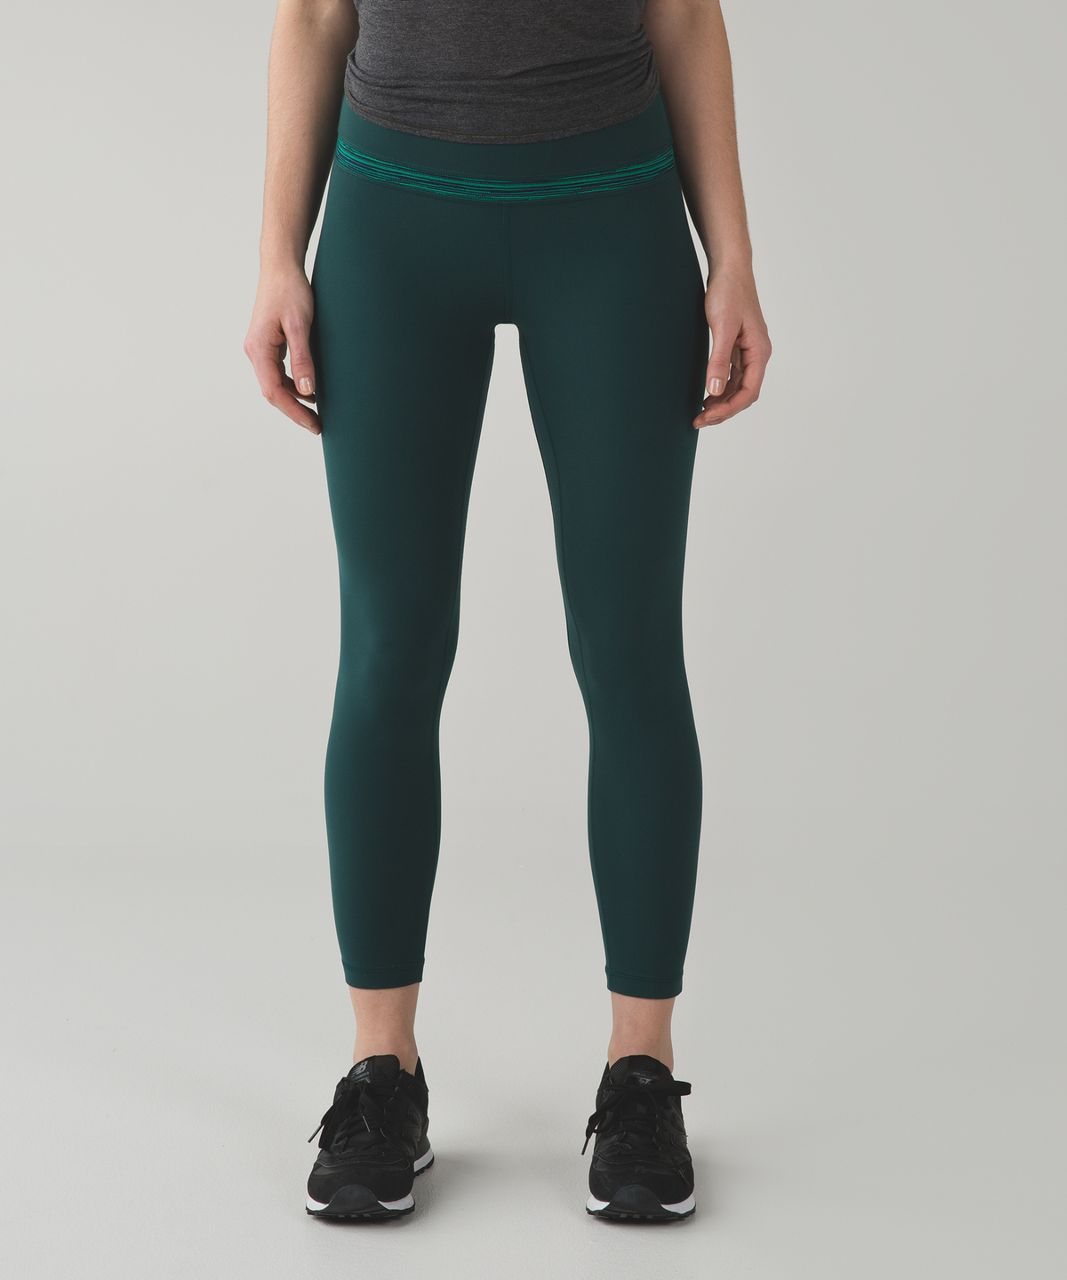 Lululemon Align Pant - Deep Green / Cyber Jungle Hero Blue